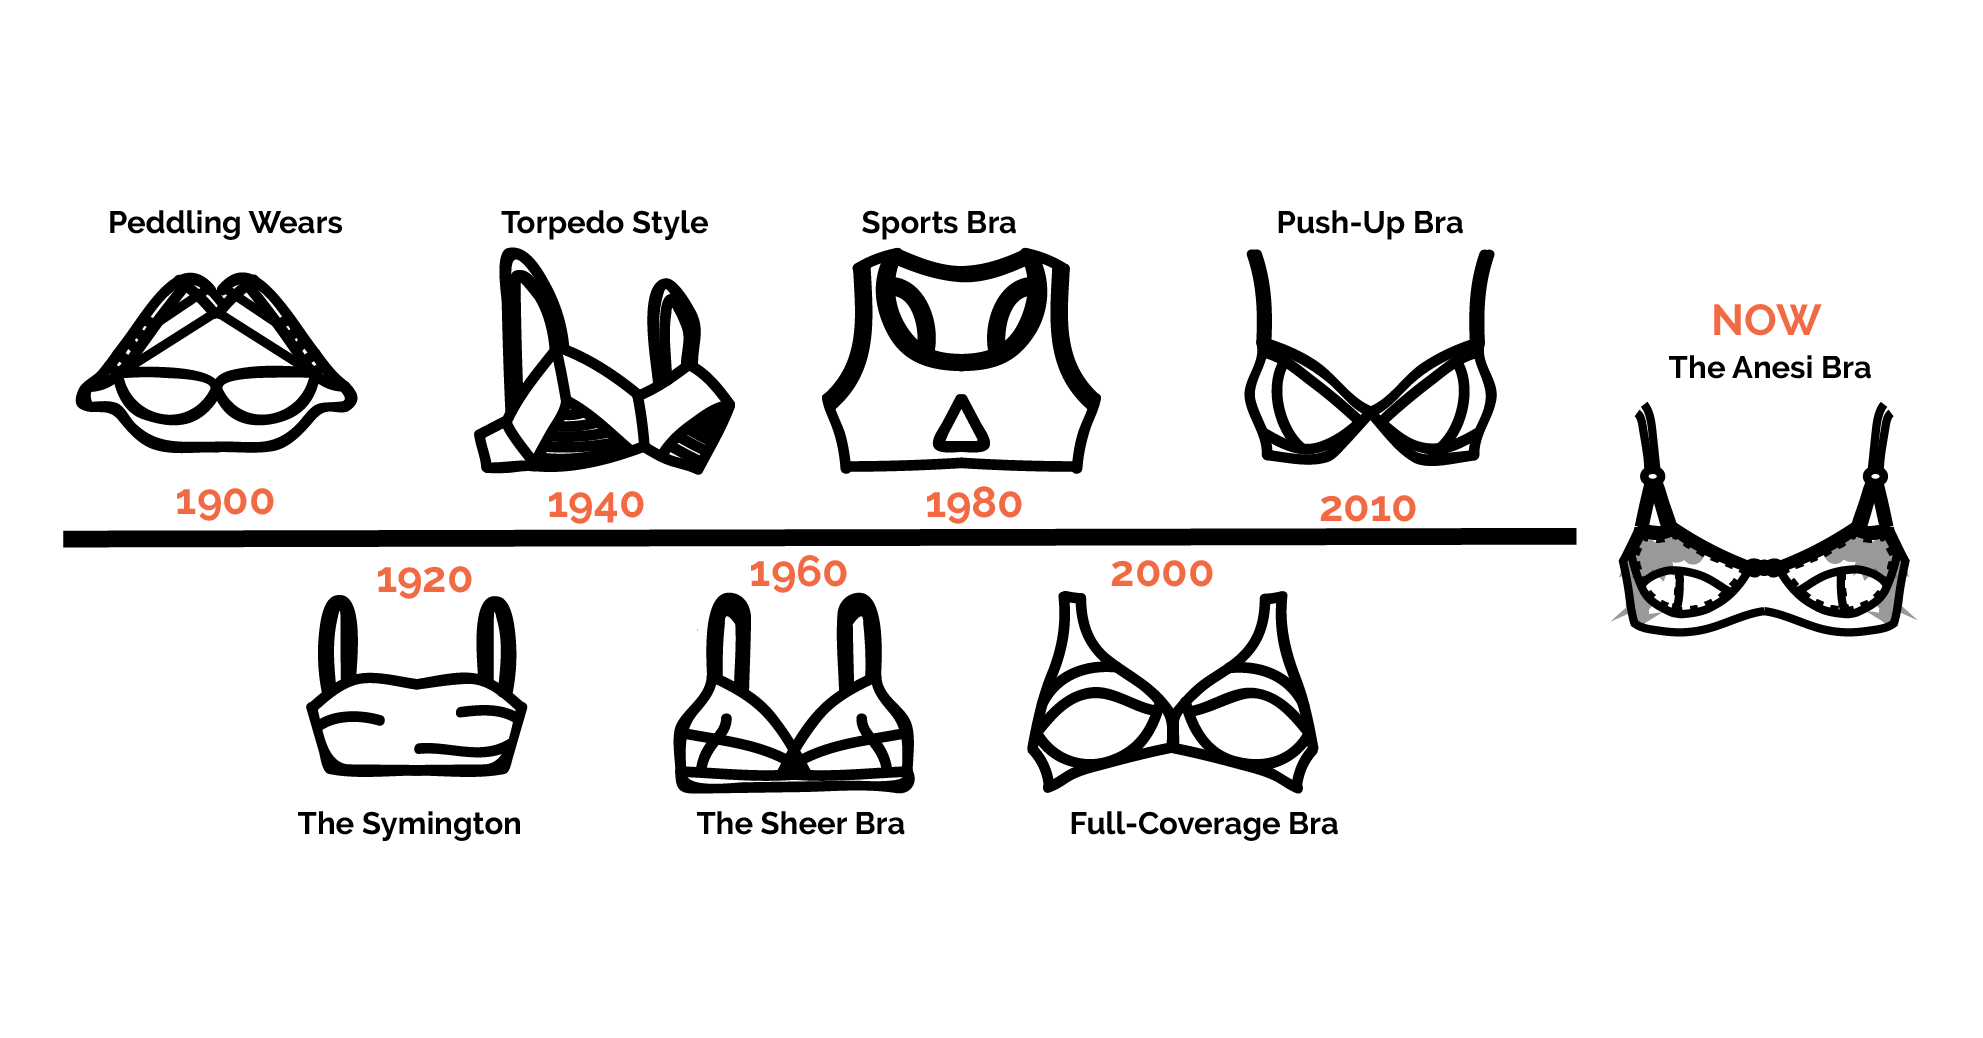 The Evolution of Bras